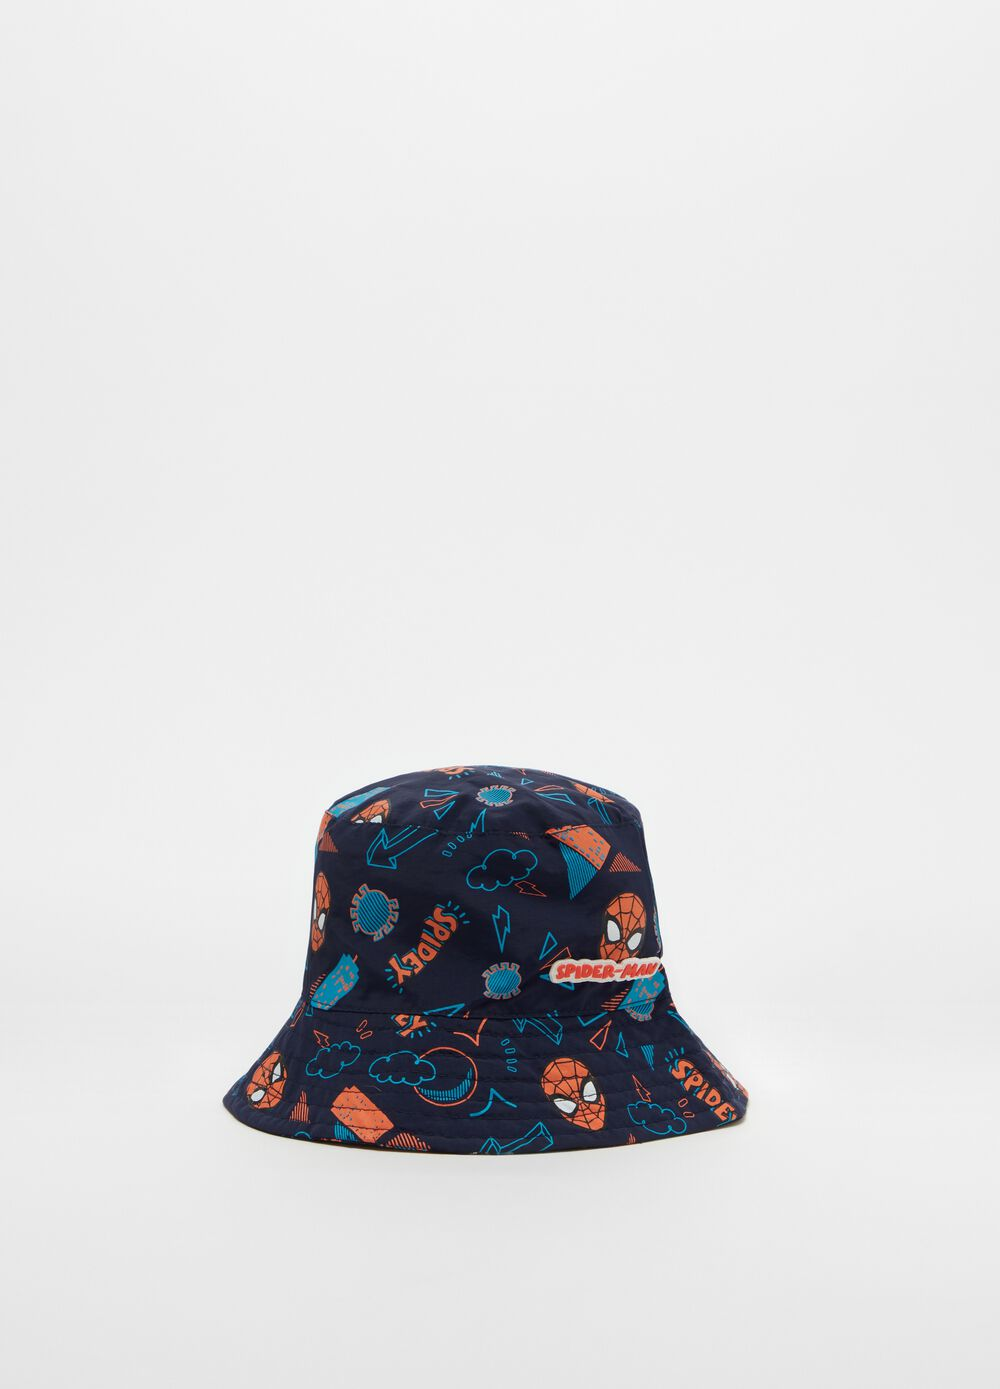 Marvel Spider Man rain hat